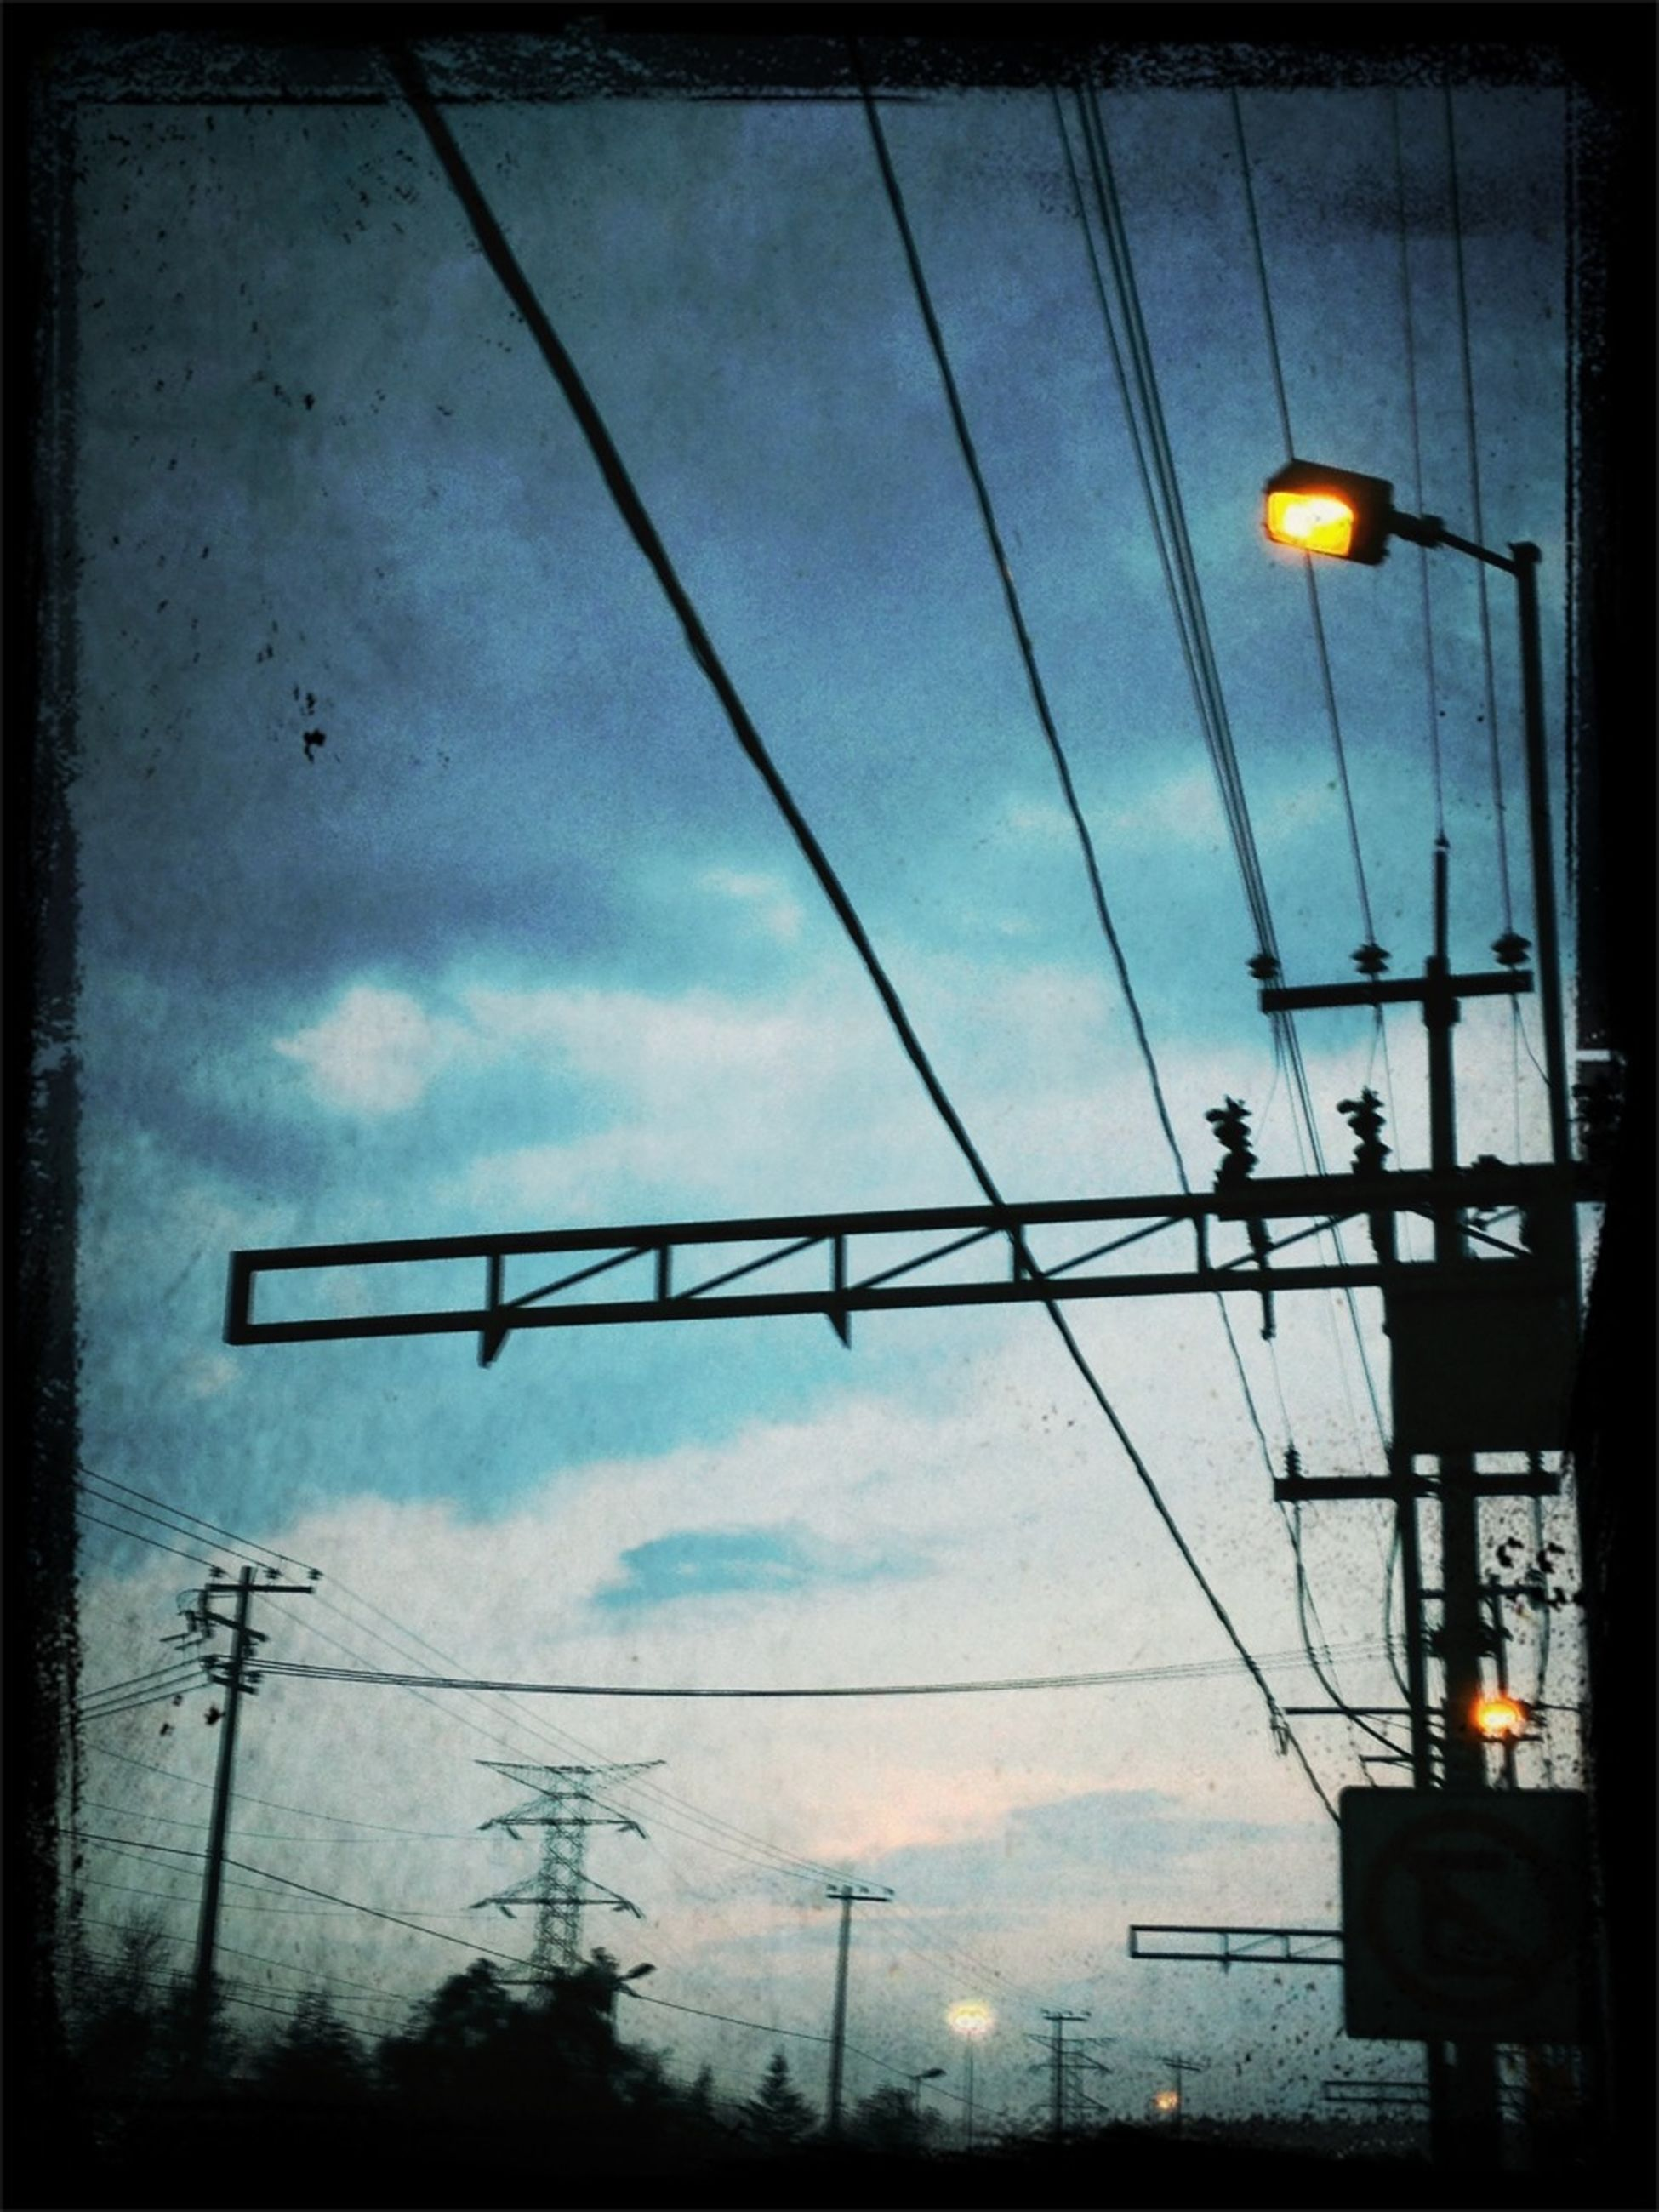 low angle view, sky, power line, electricity, lighting equipment, street light, cloud - sky, cable, silhouette, power supply, illuminated, connection, transfer print, electricity pylon, built structure, auto post production filter, dusk, cloud, cloudy, hanging